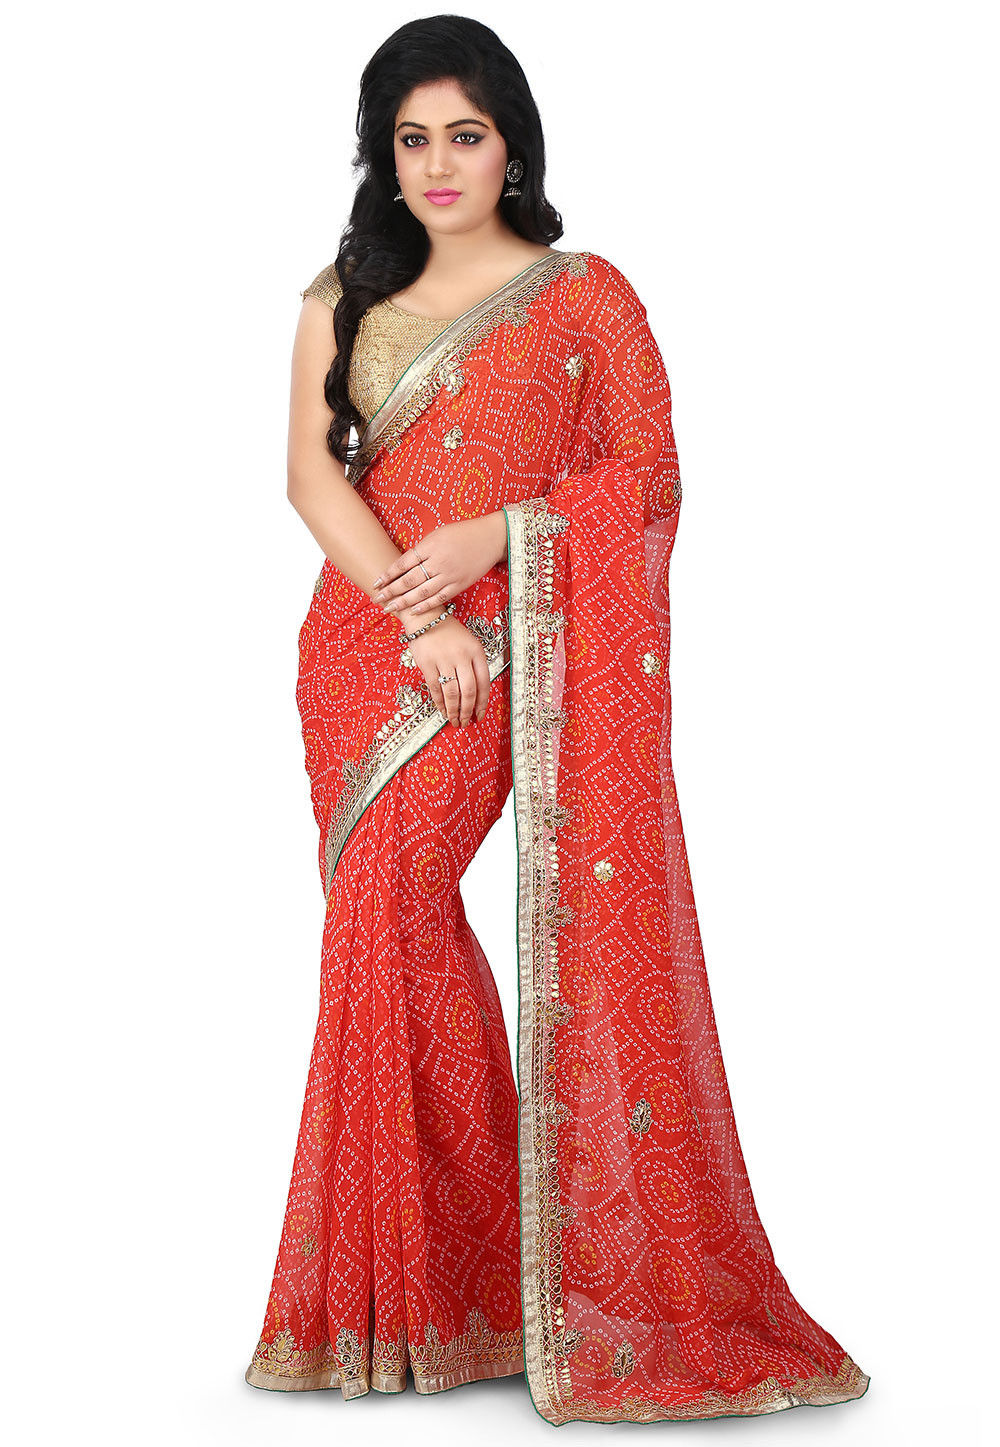 Bandhej Georgette Saree in Coral Red